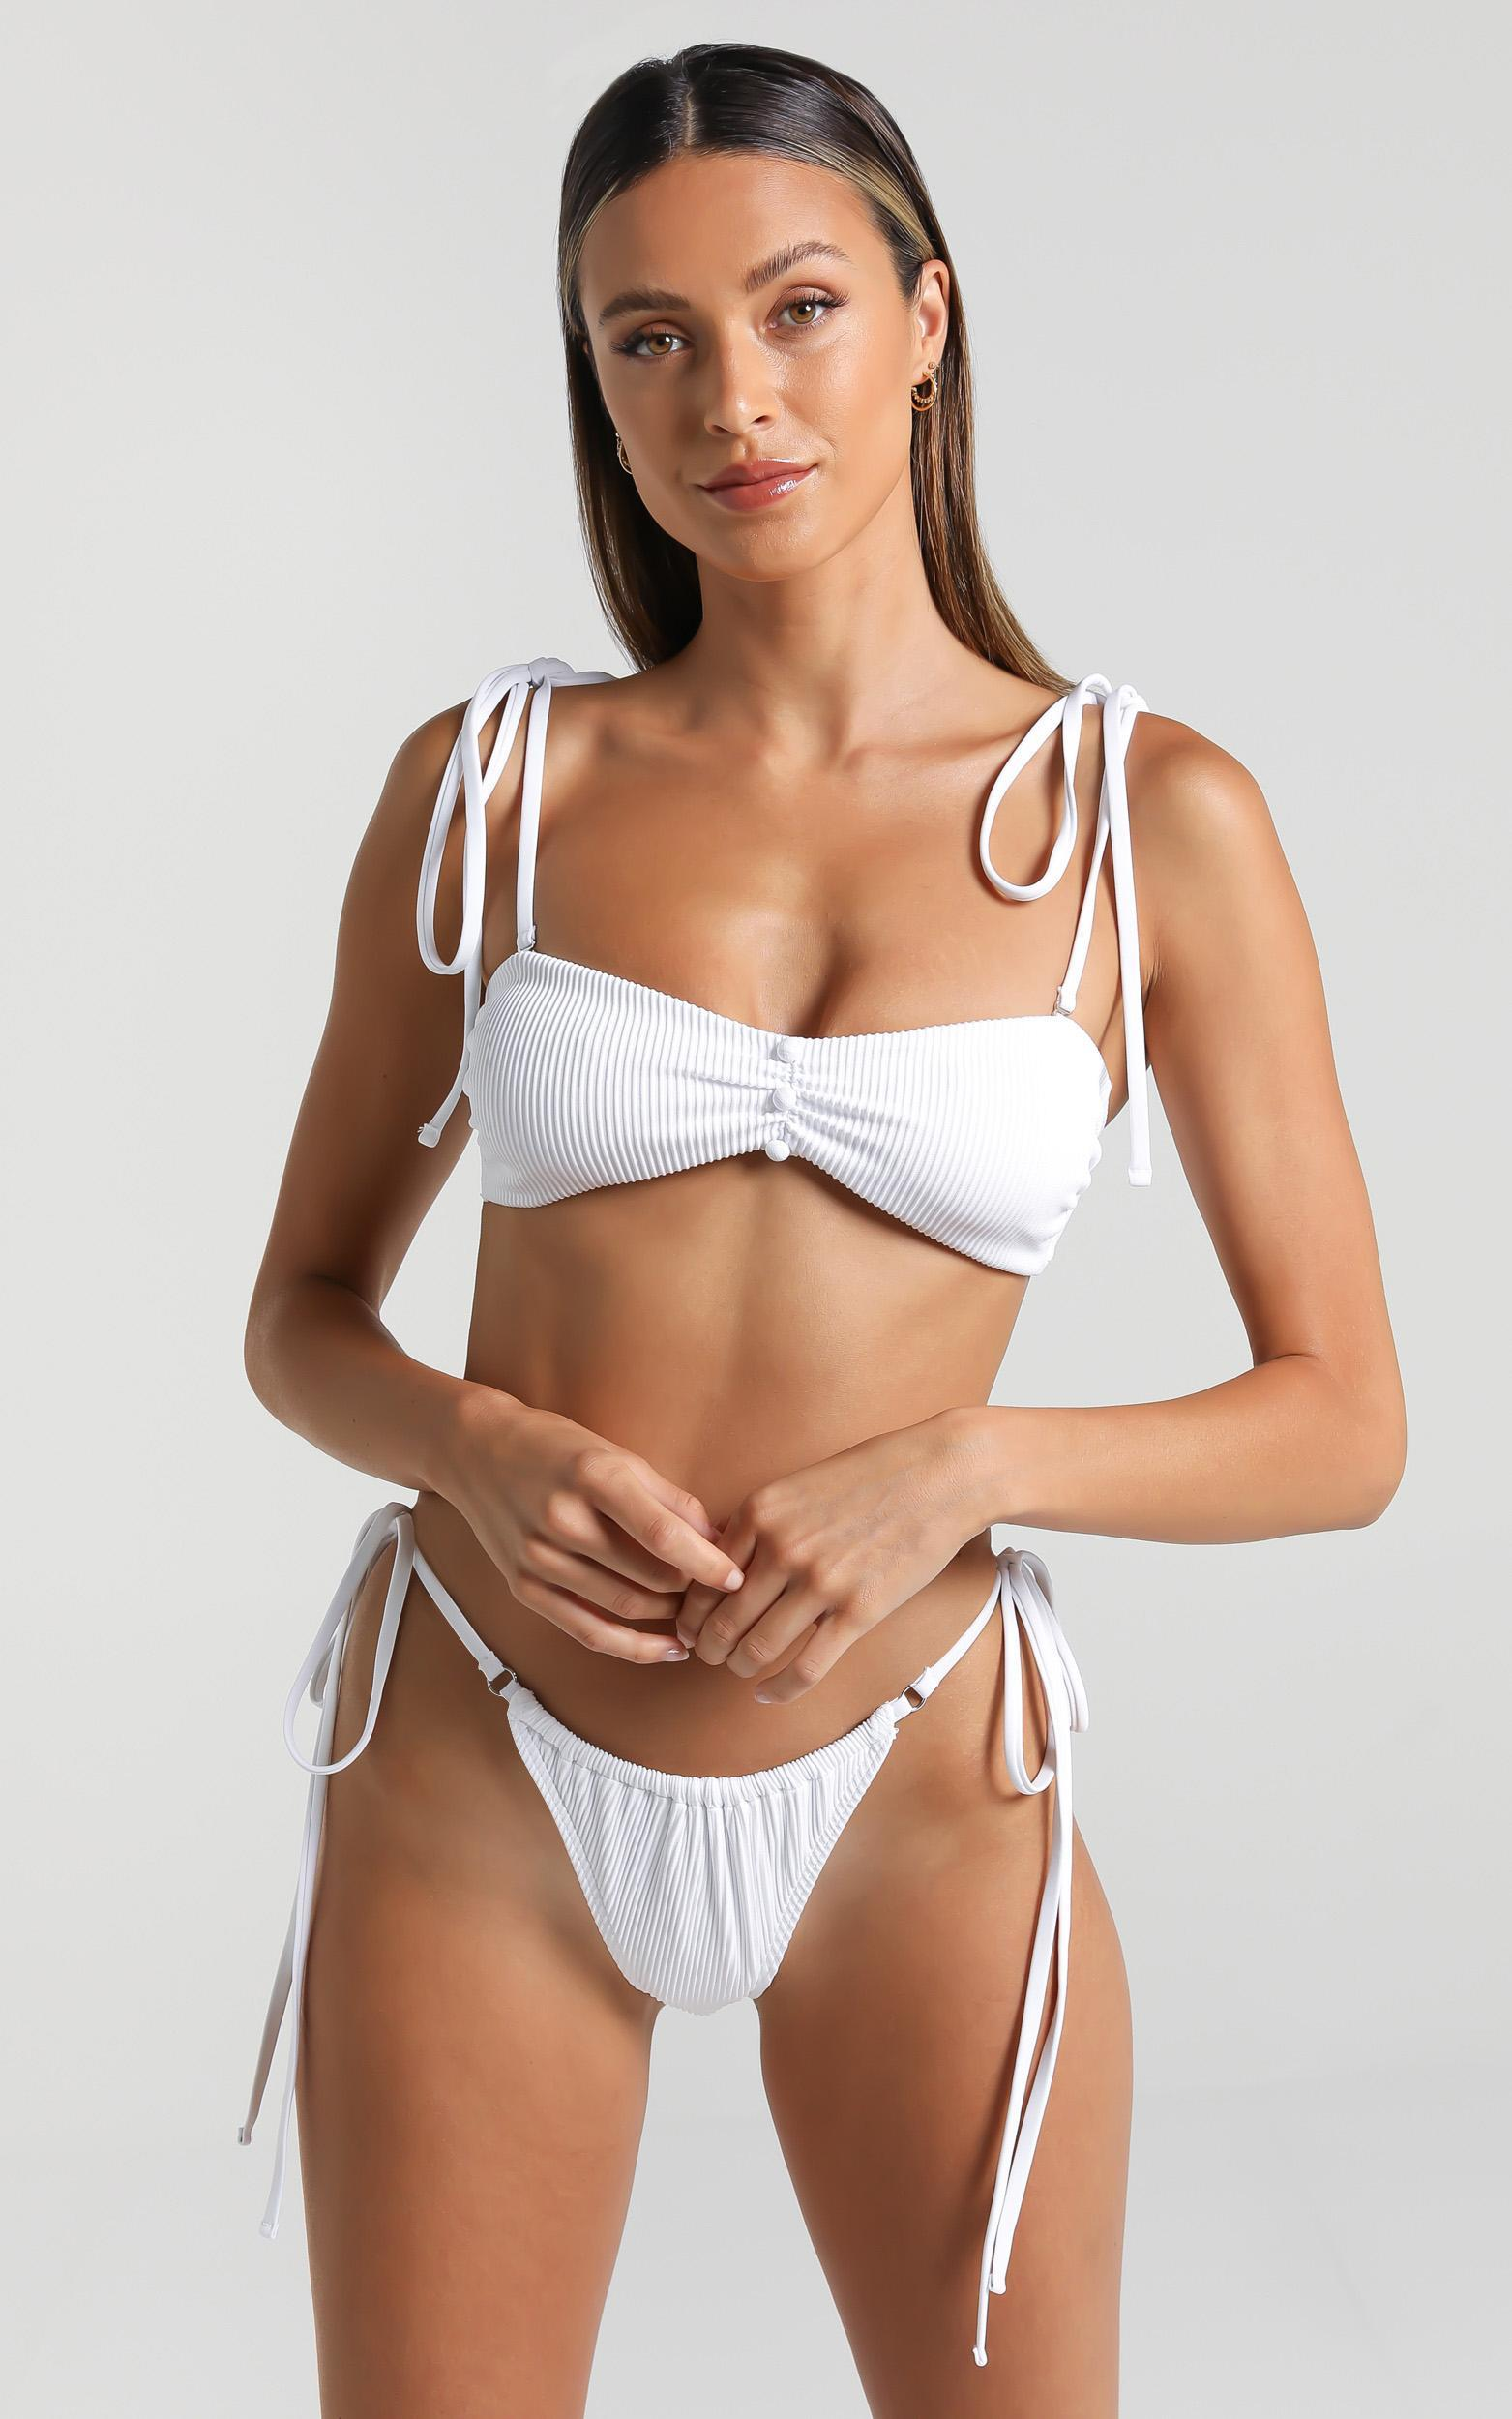 Twiin Swim - Celine Ruched Bandeau in White - XS, White, hi-res image number null